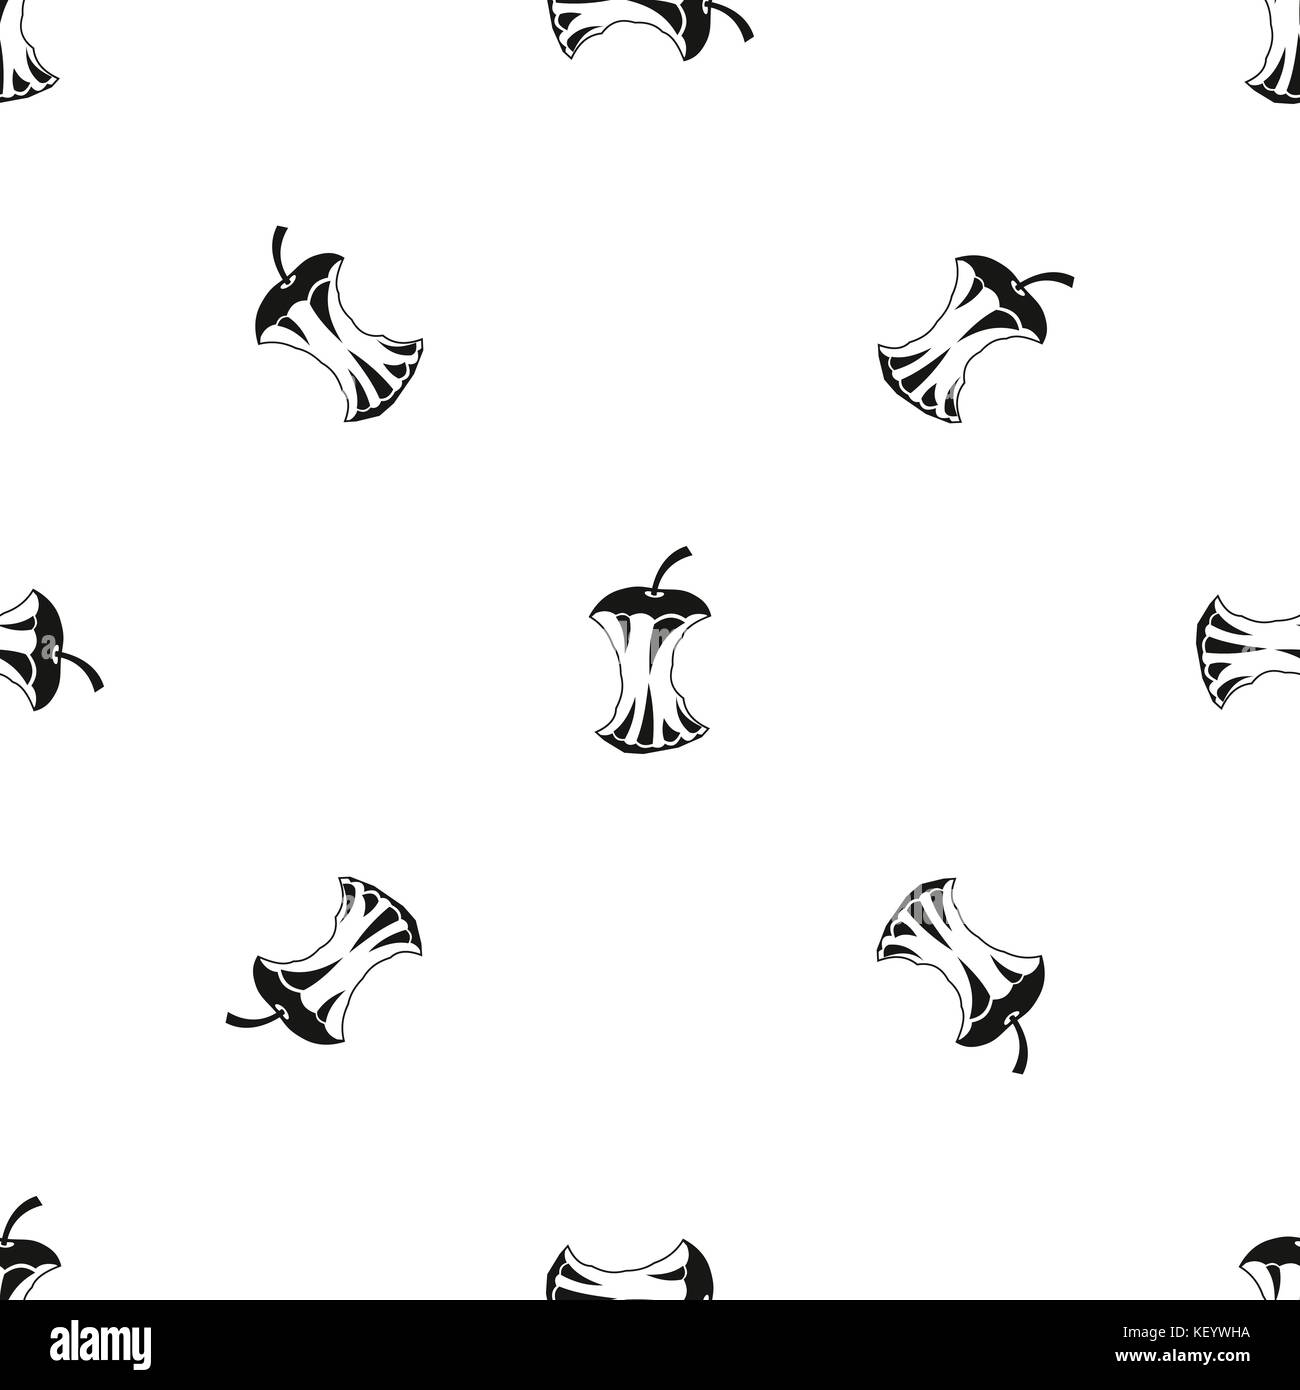 Apple core pattern seamless black - Stock Image